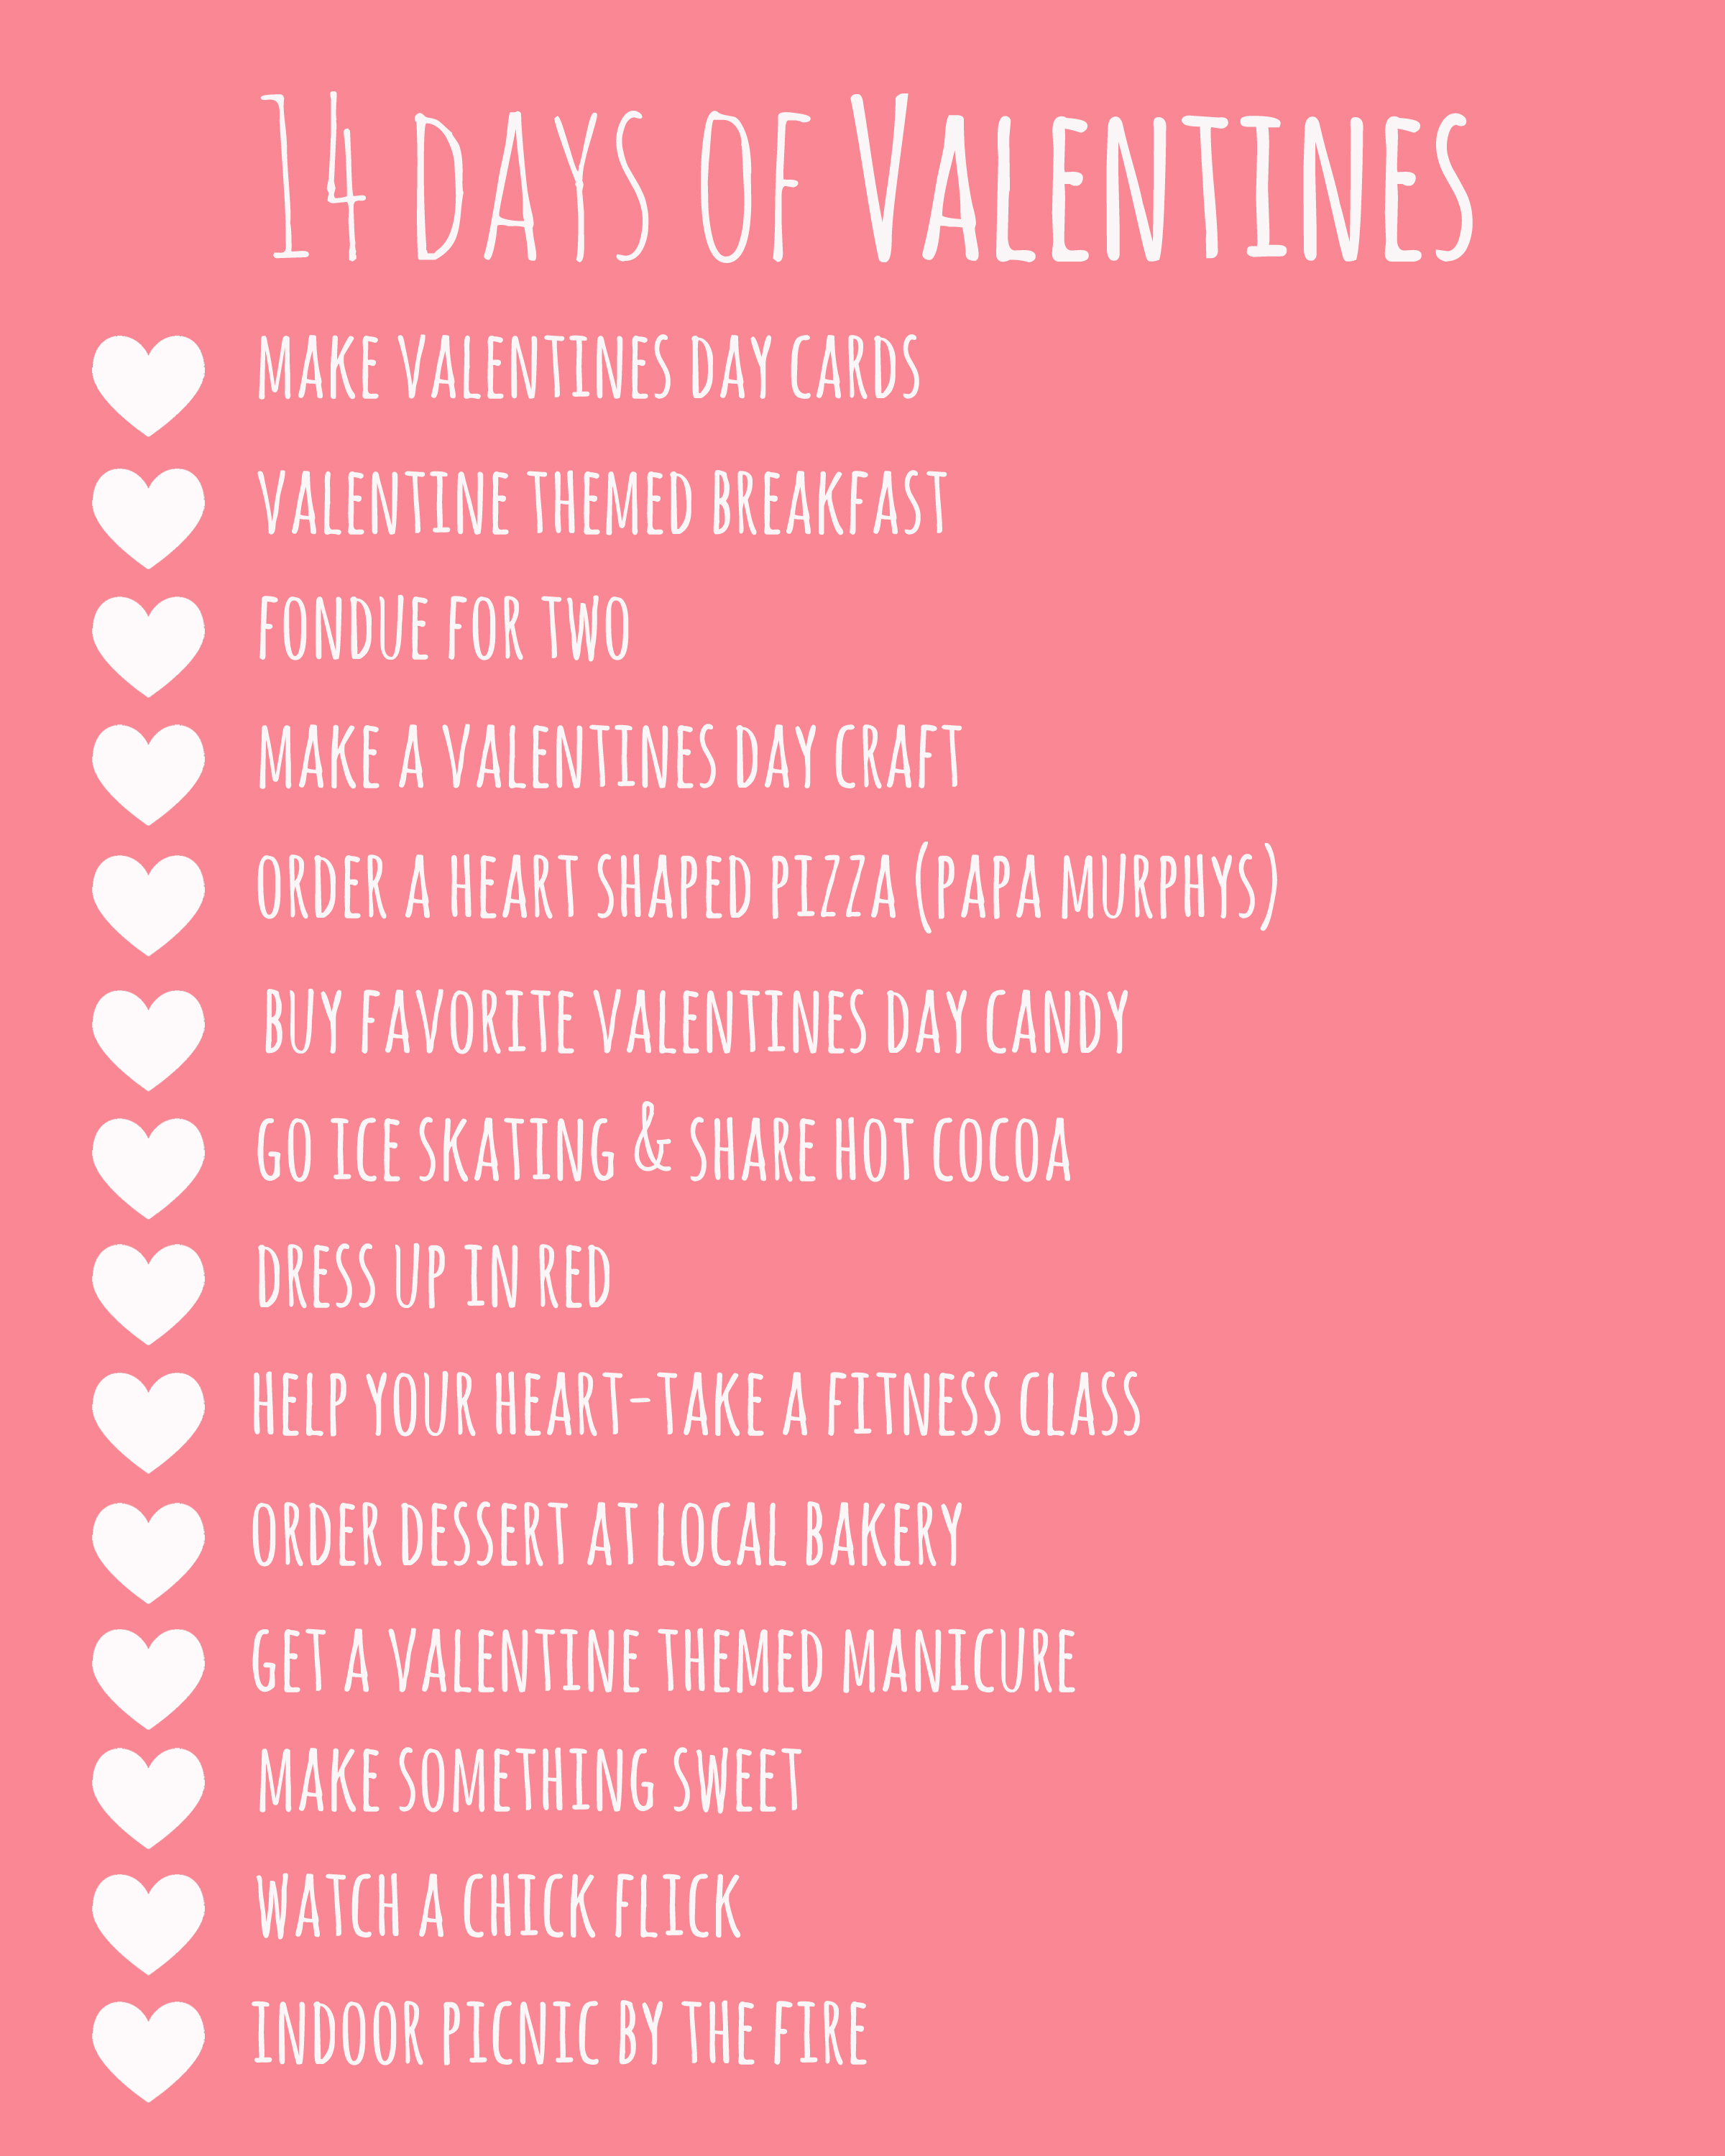 Boyfriend Quotes For Valentines Day: 14 Days Of Valentines Printable